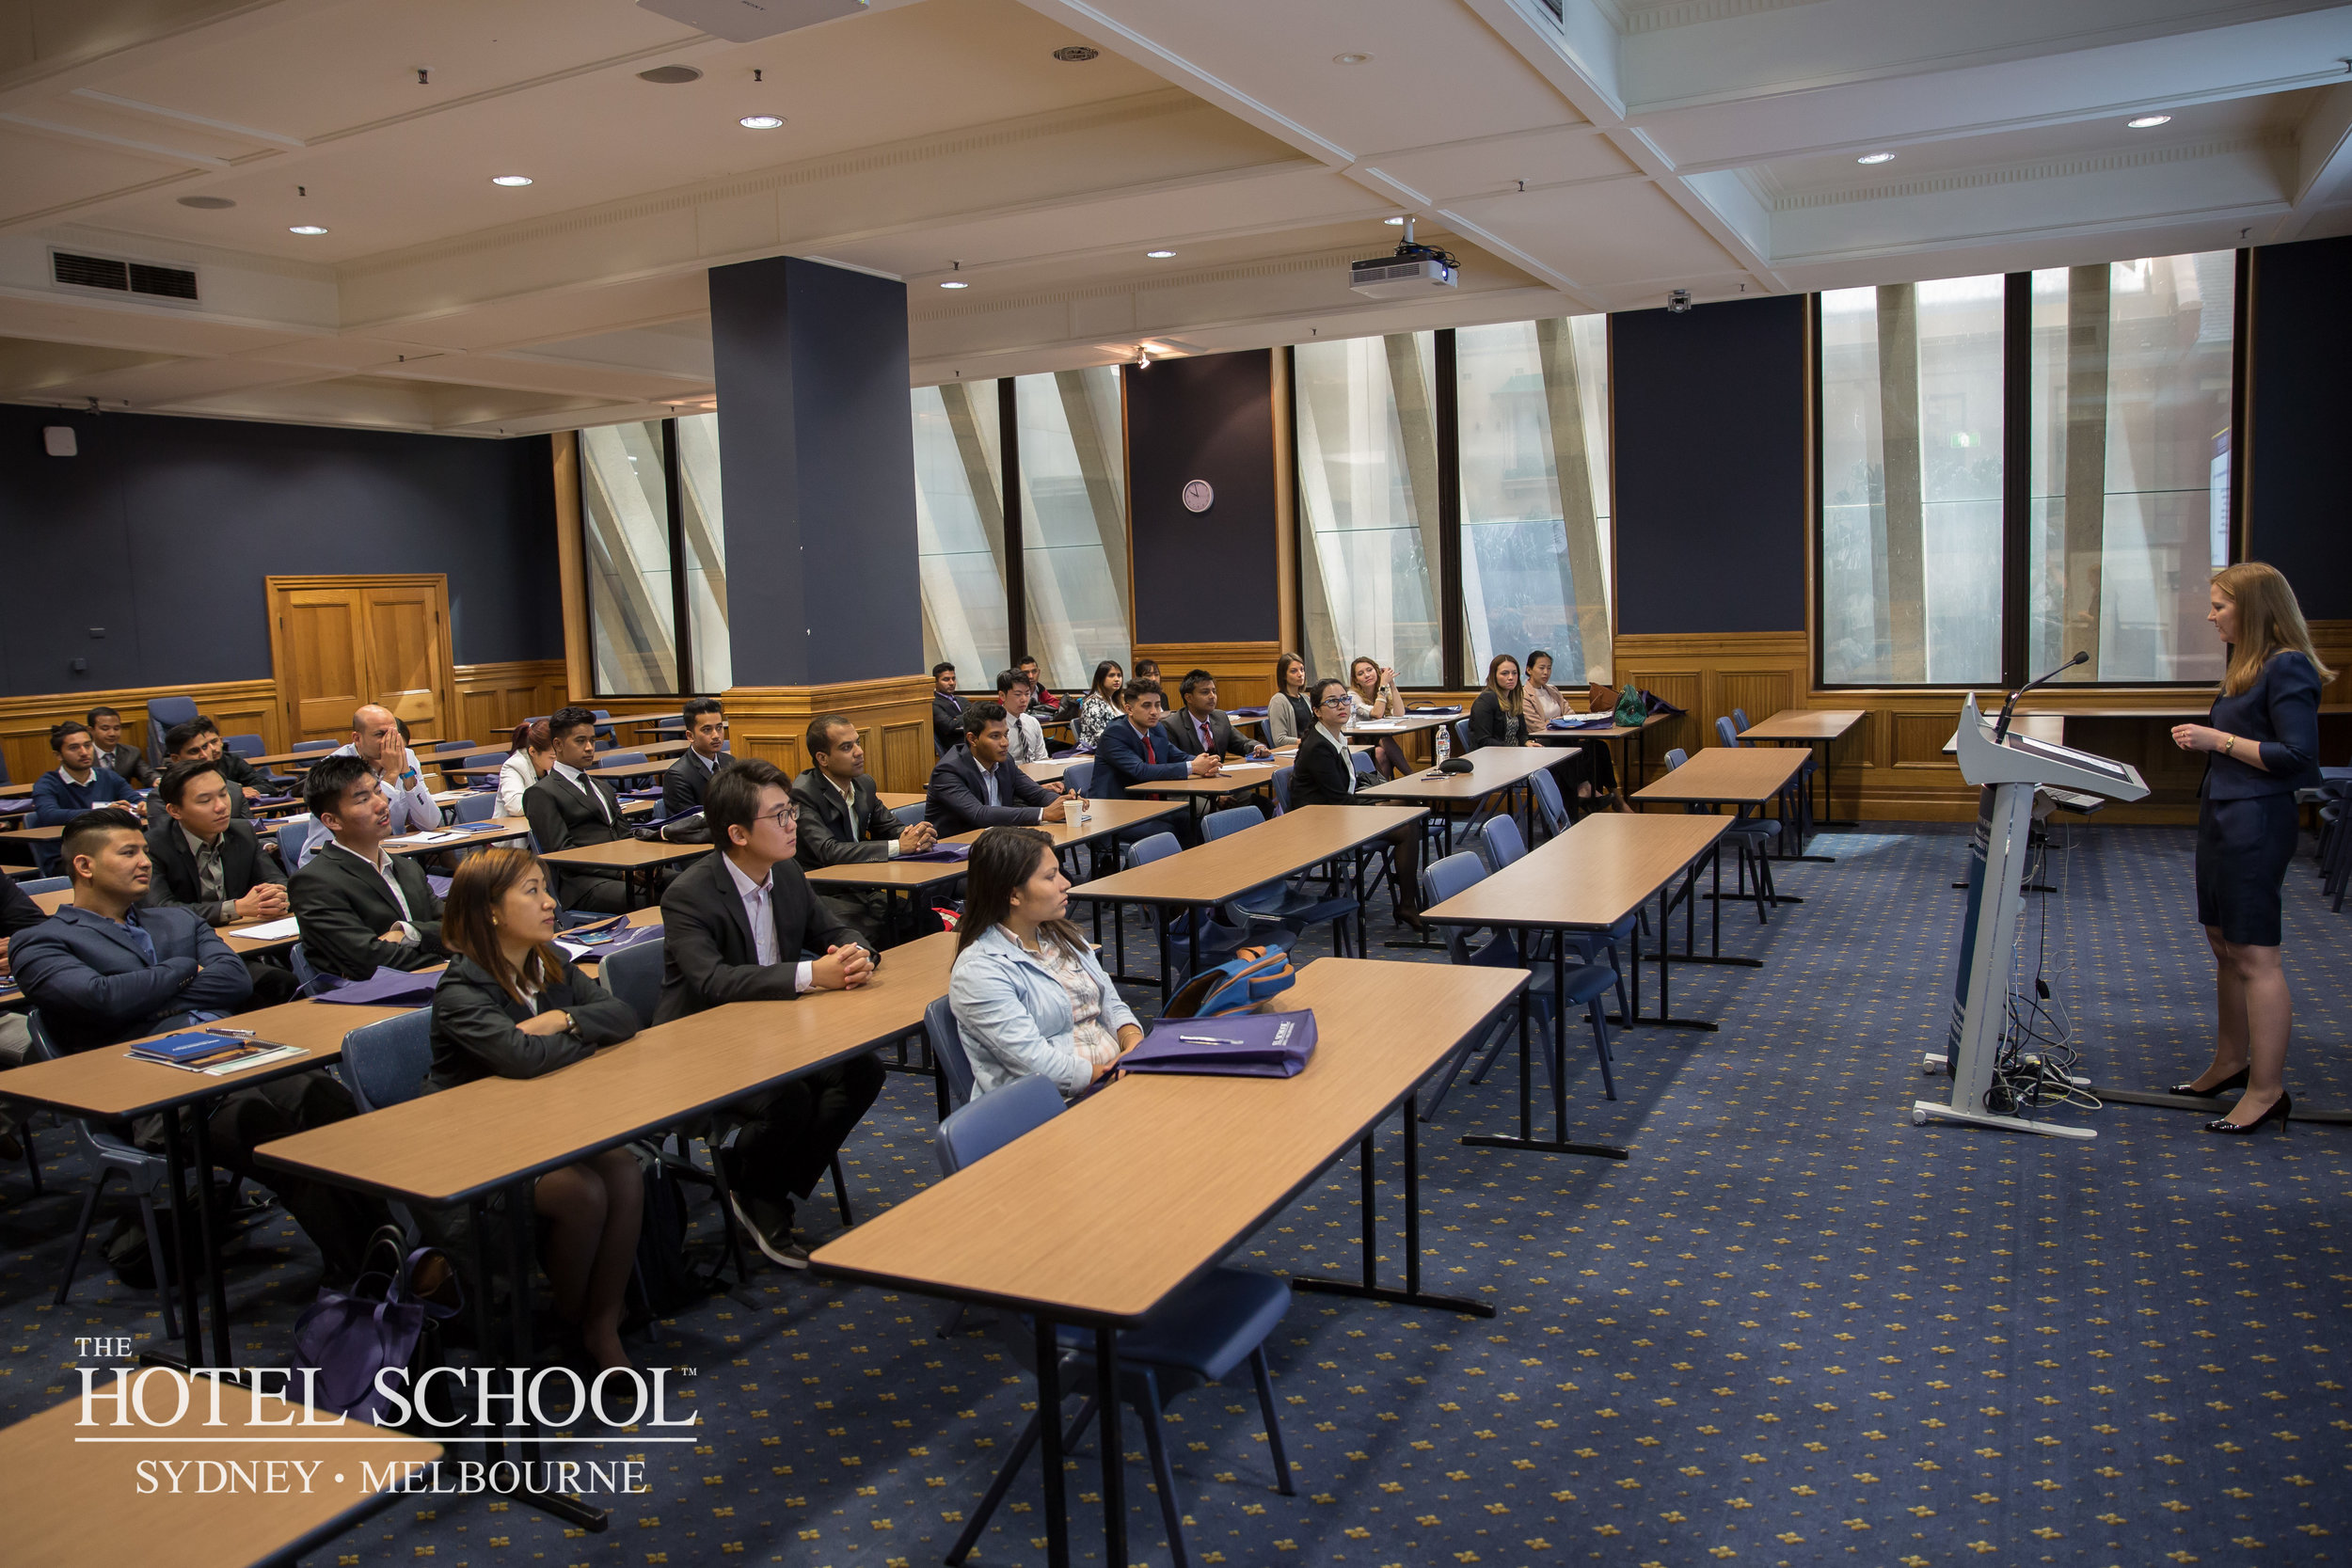 the-hotel-school-sydney-business-photography-1800829994